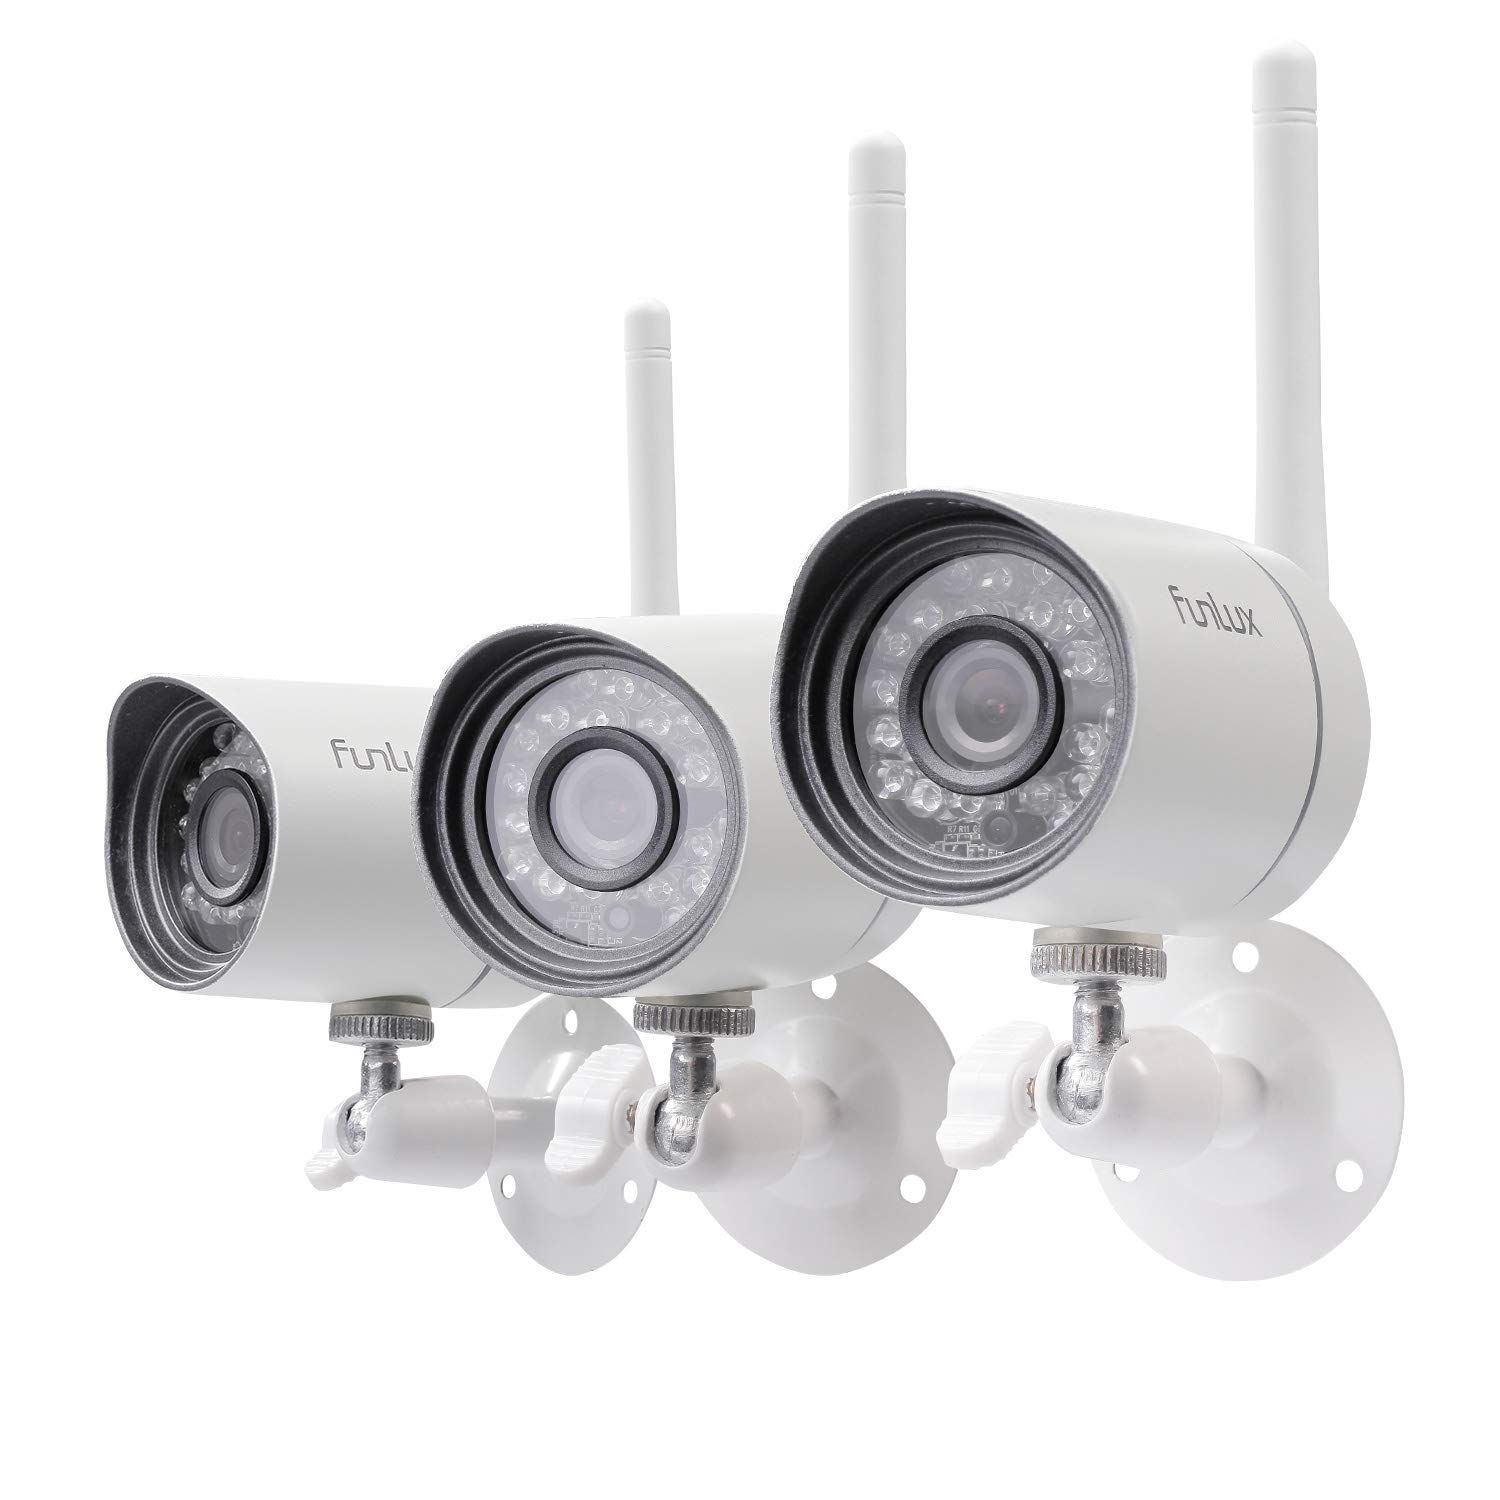 Wireless Security Camera System (3 Pack), Smart Home HD Indoor Outdoor WiFi IP Cameras with Night Vision, Cloud Service Available